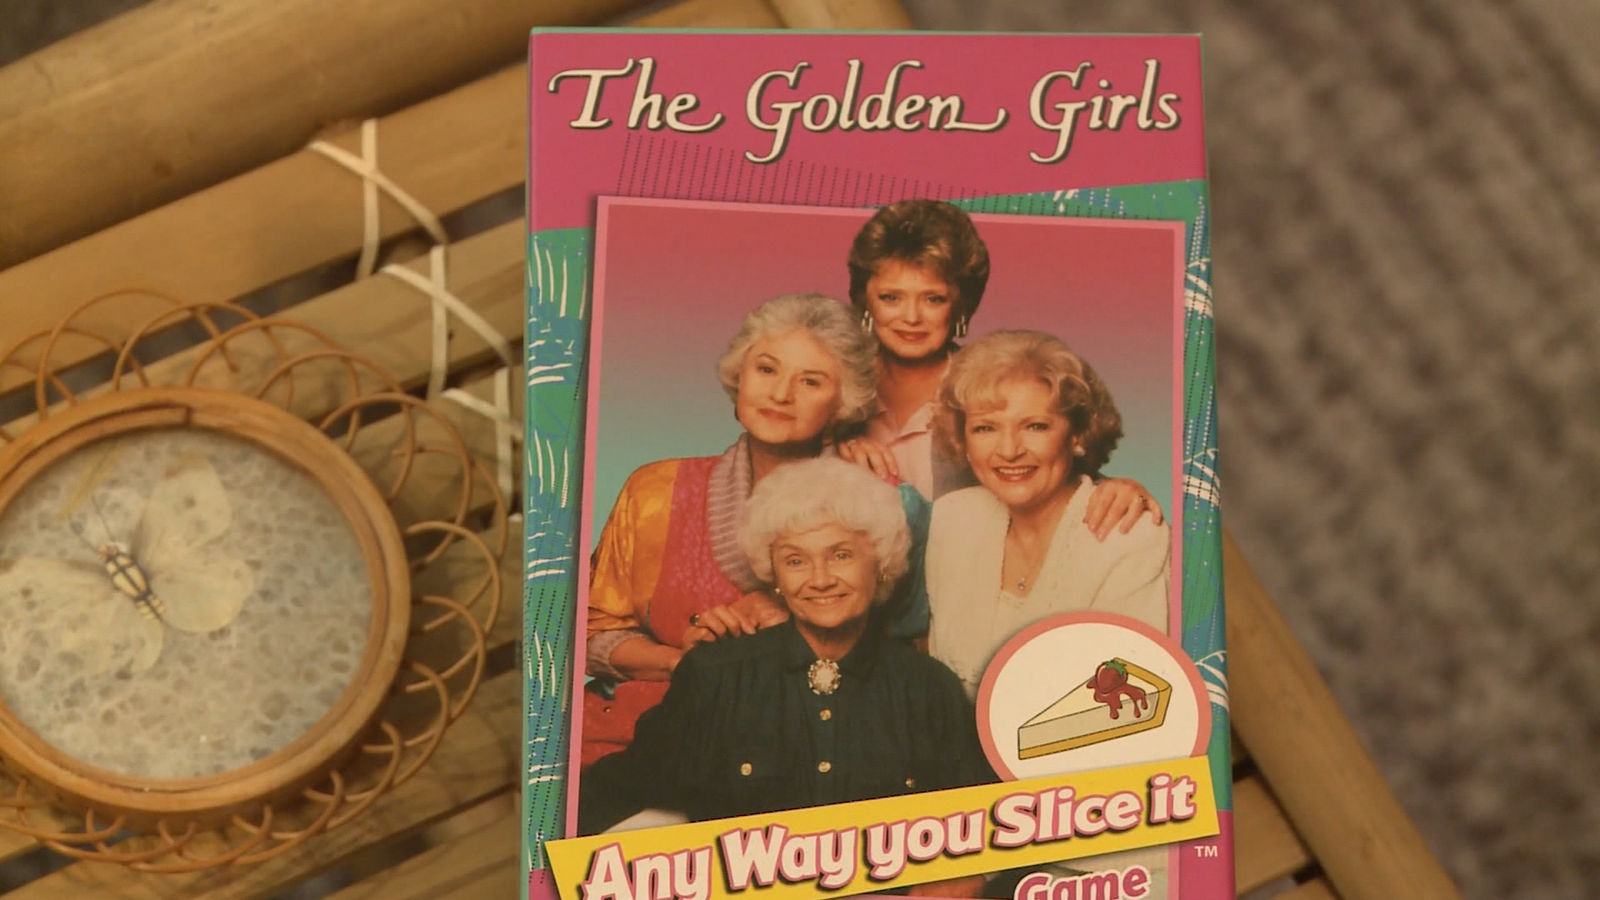 Thank you for being a friend! Fans of the beloved 80s sitcom Golden Girls can rent this house in Ardmore, Oklahoma. (Courtesy: CNN Newsource, KXII)